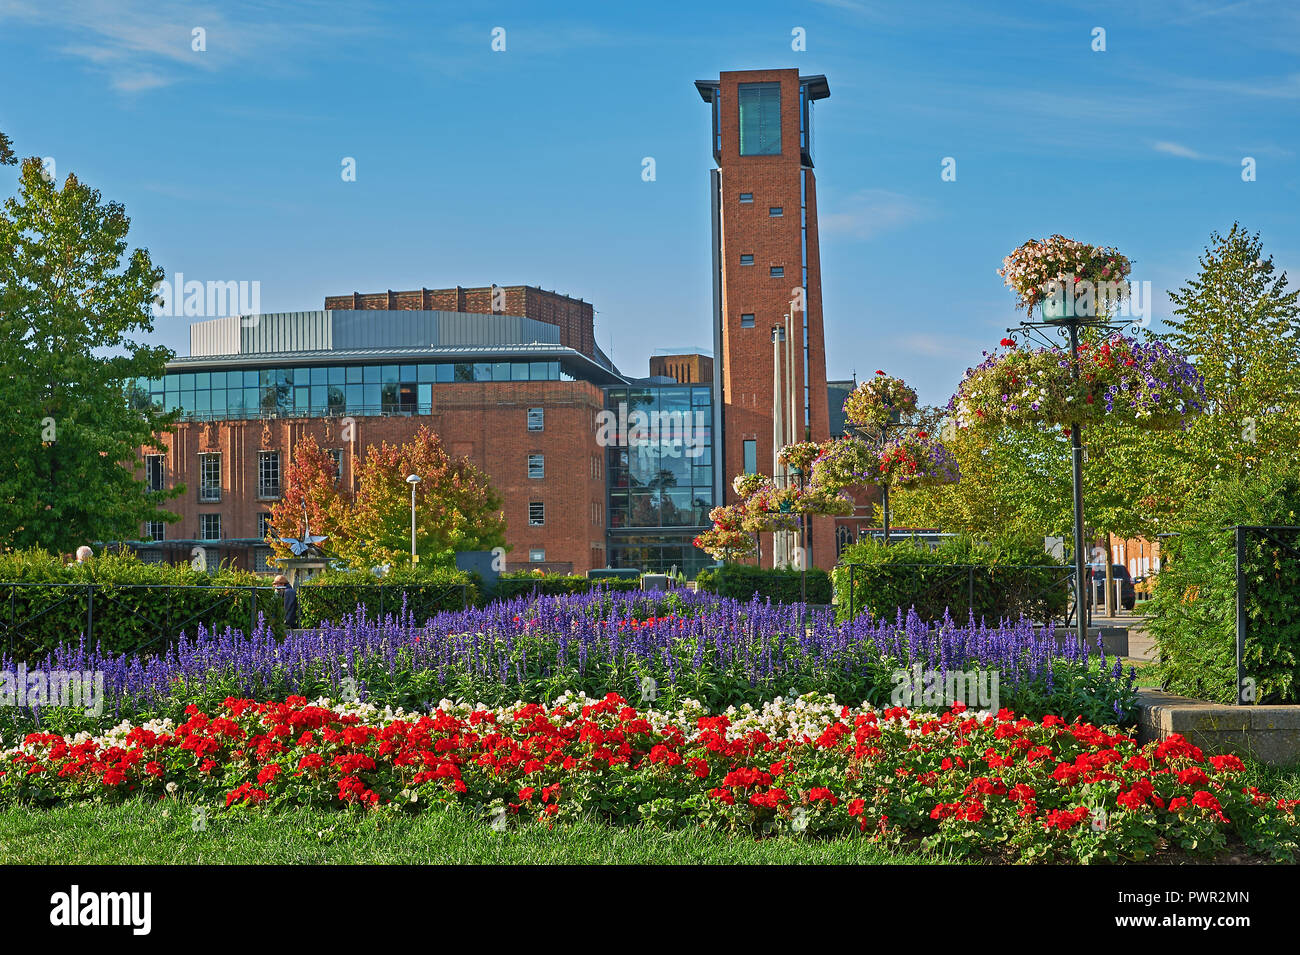 Stratford upon Avon and the Royal Shakespeare Theatre viewed from across Bancroft Gardens early in the morning Stock Photo